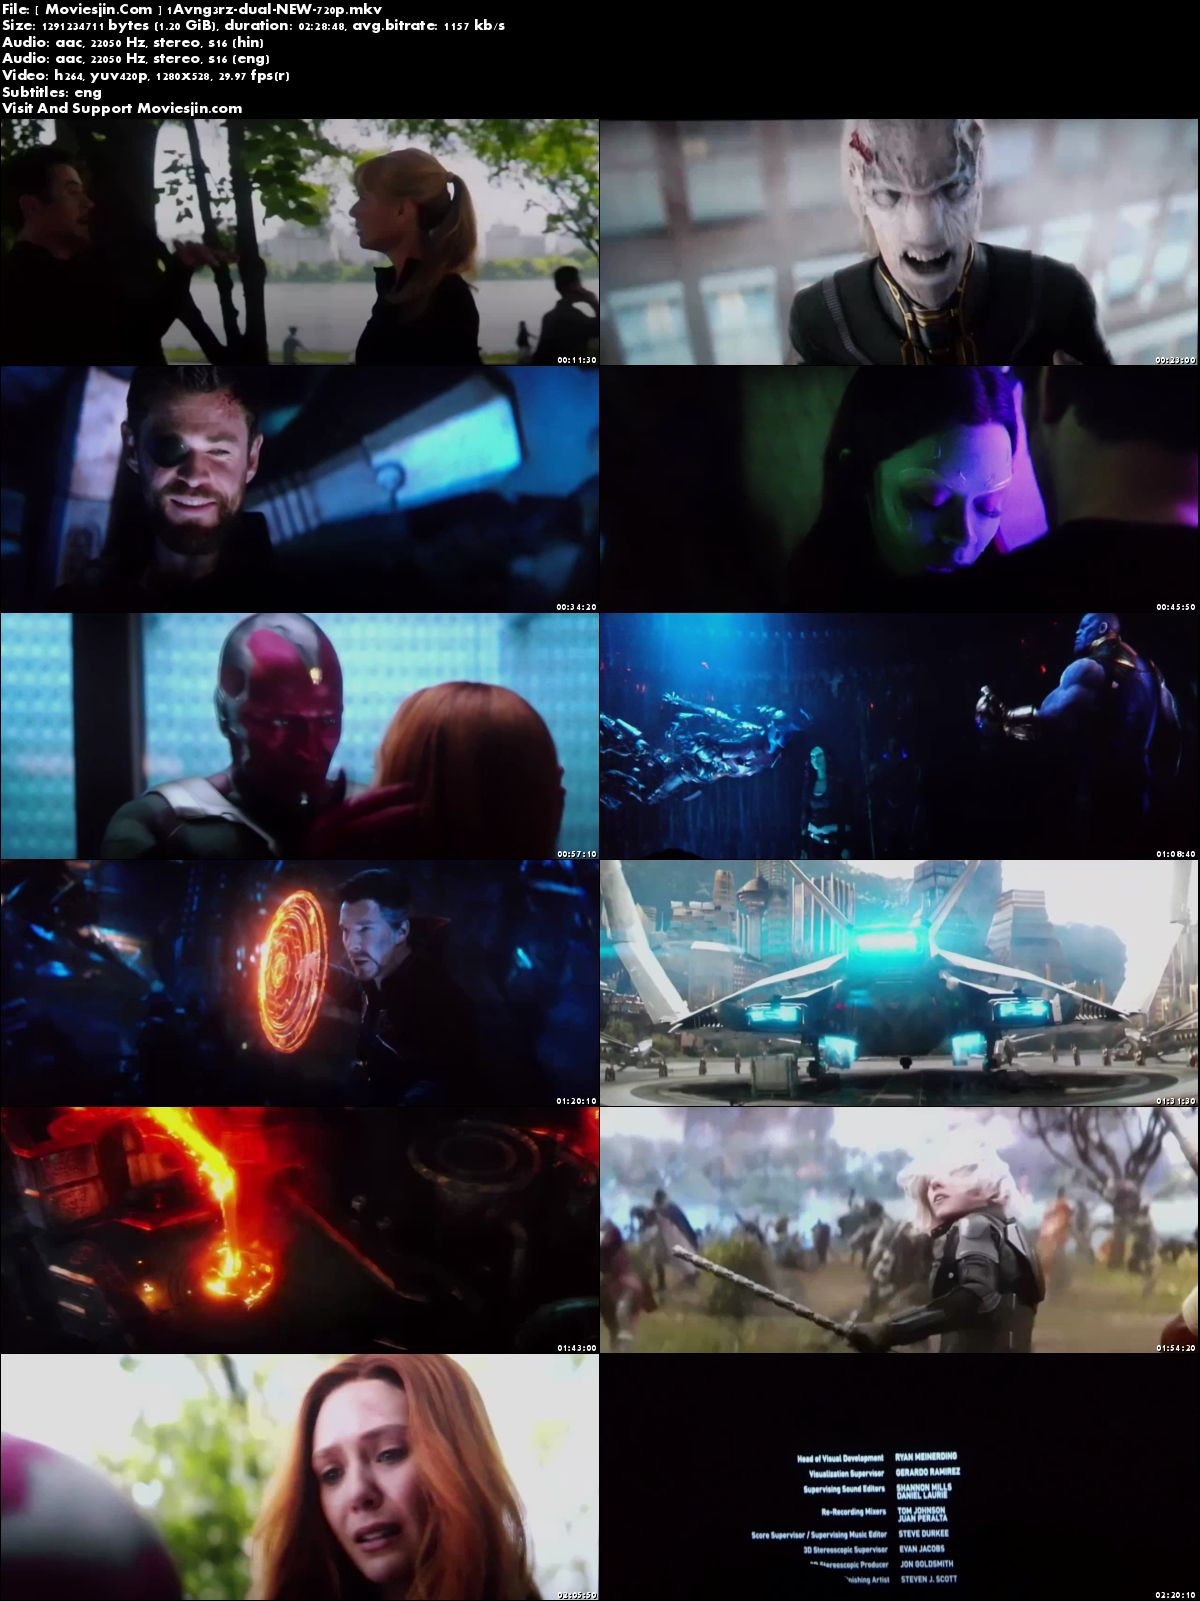 Watch Online Avengers Infinity War 2018 New HDCAM Hindi 450MB Dual Audio 480p Full Movie Download mkvcage